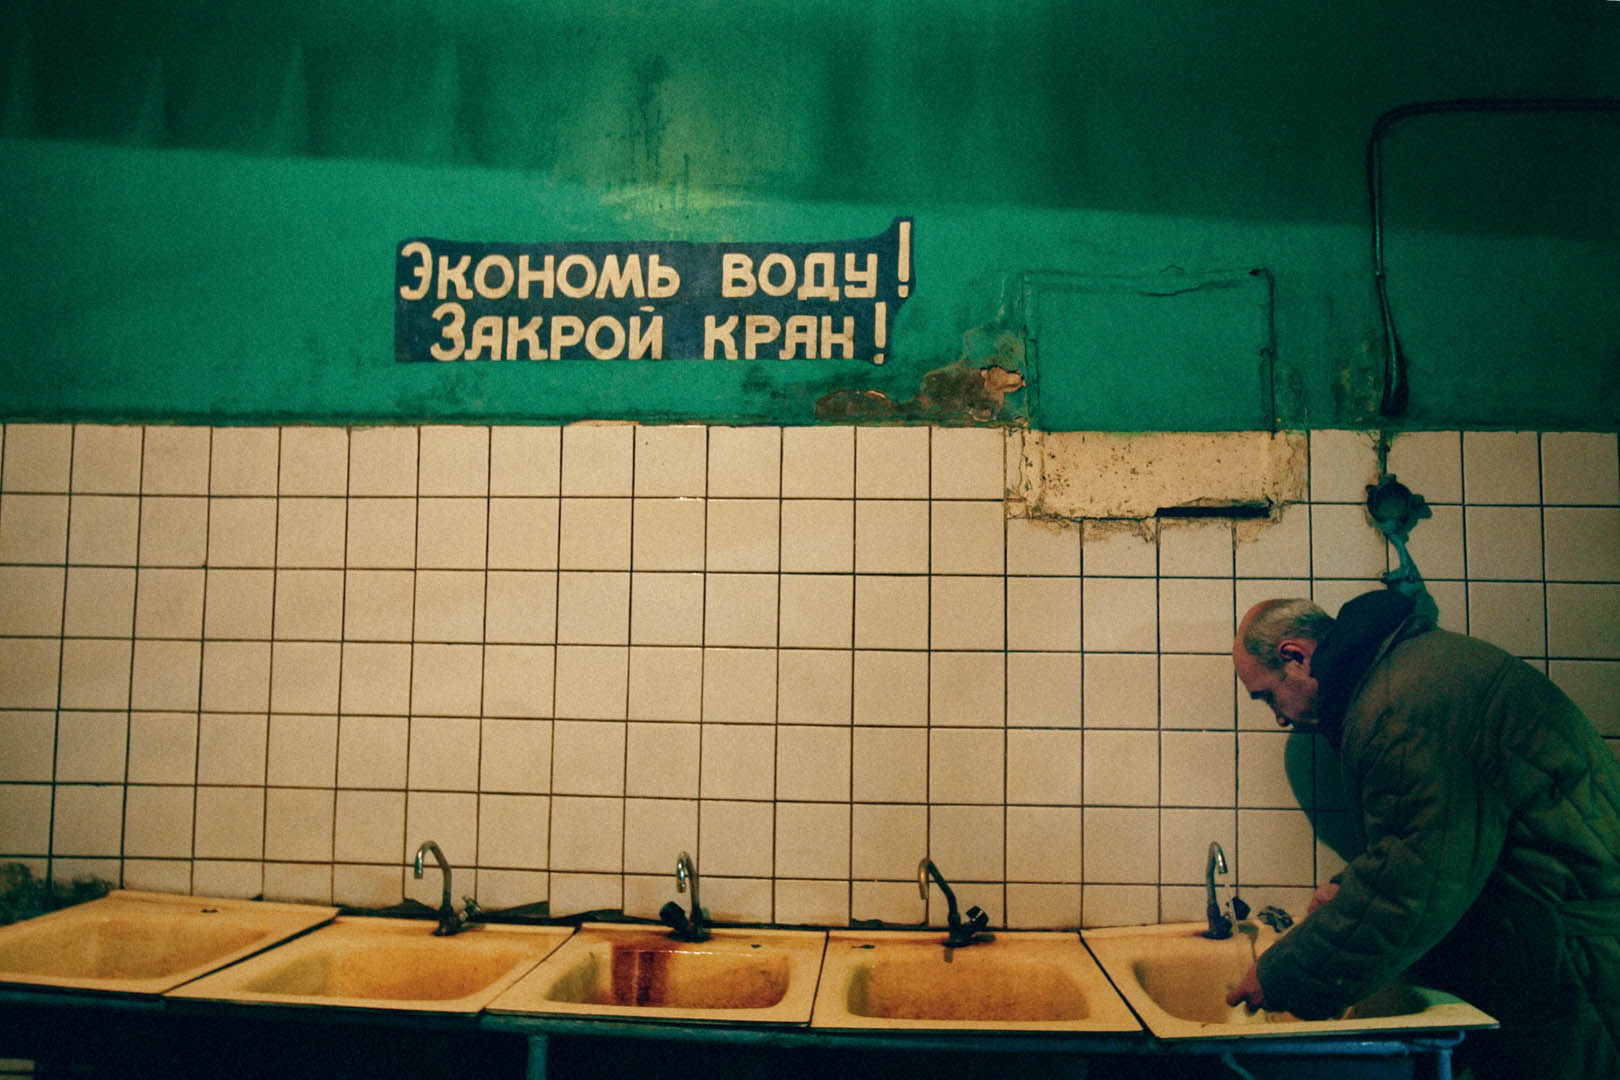 "An inmate washes his hands before dinner, under the sign ""Save the water, close the tap"". Life in LTP is surrounded by signs, instructions, regulations and rules. Labour Treatment Profilactorium for alcohol addicted in Belarus. LTP is a part of the penal system and Belarus is the only country in the world that still practices the punishment of obligatory incarceration for addicts. There are 5 LTP in Belarus, about 1600 inmates each. One LTP is for women, the other ones are only male. The main treatment is labour, and camomile tea."